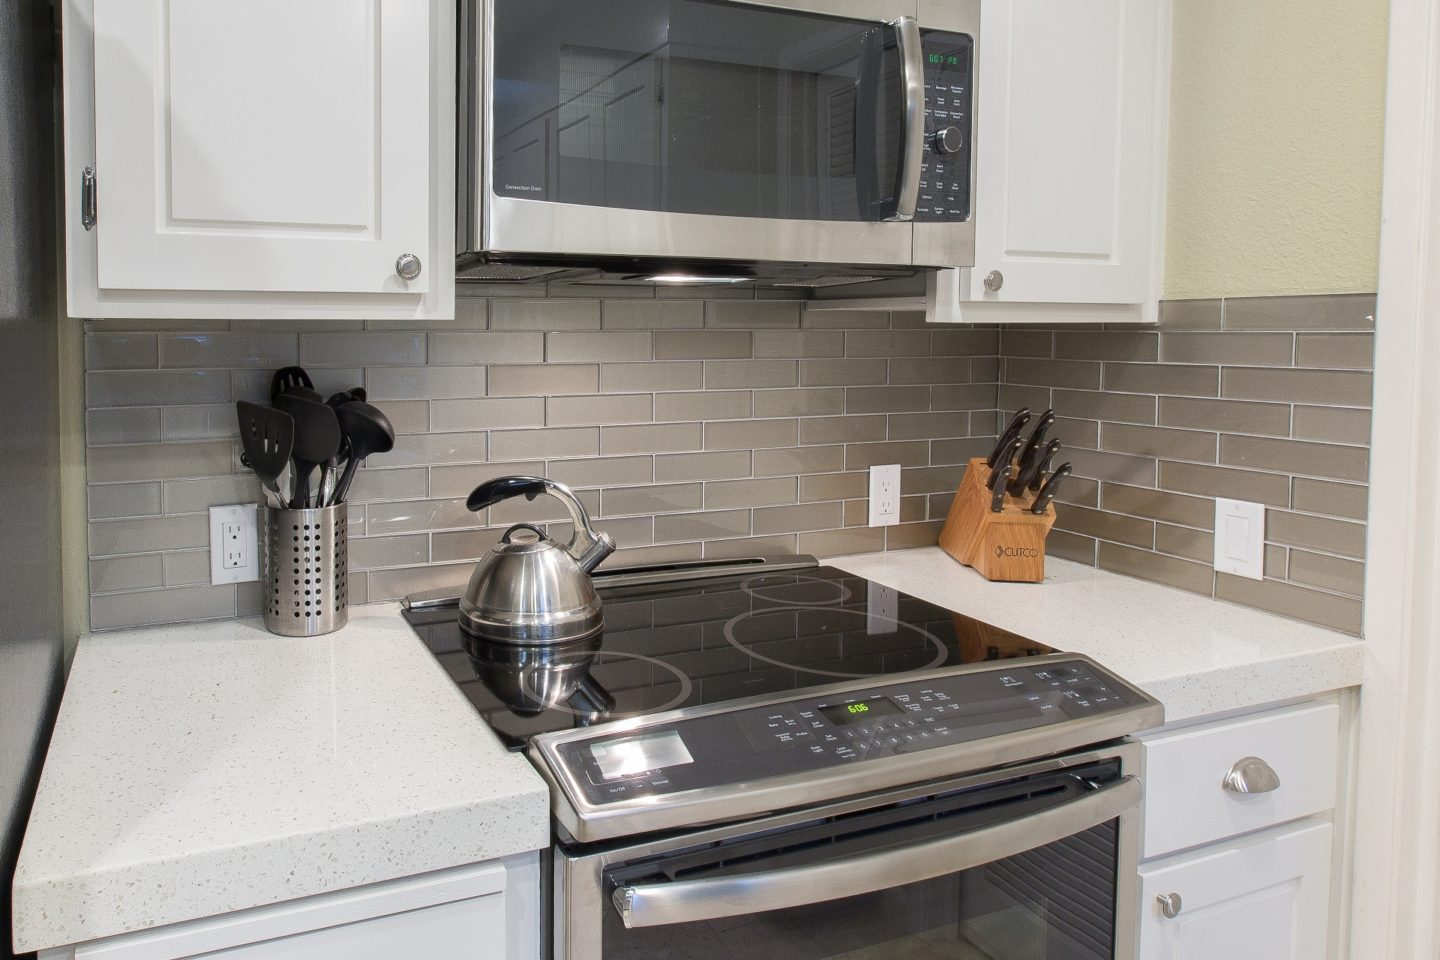 ... Backsplash Makes A Bold, Modern Statement Against The White Quartz  Tops. Notice The 80%/20% Combination Of High Gloss And Matte Finish In The  Same Color ...